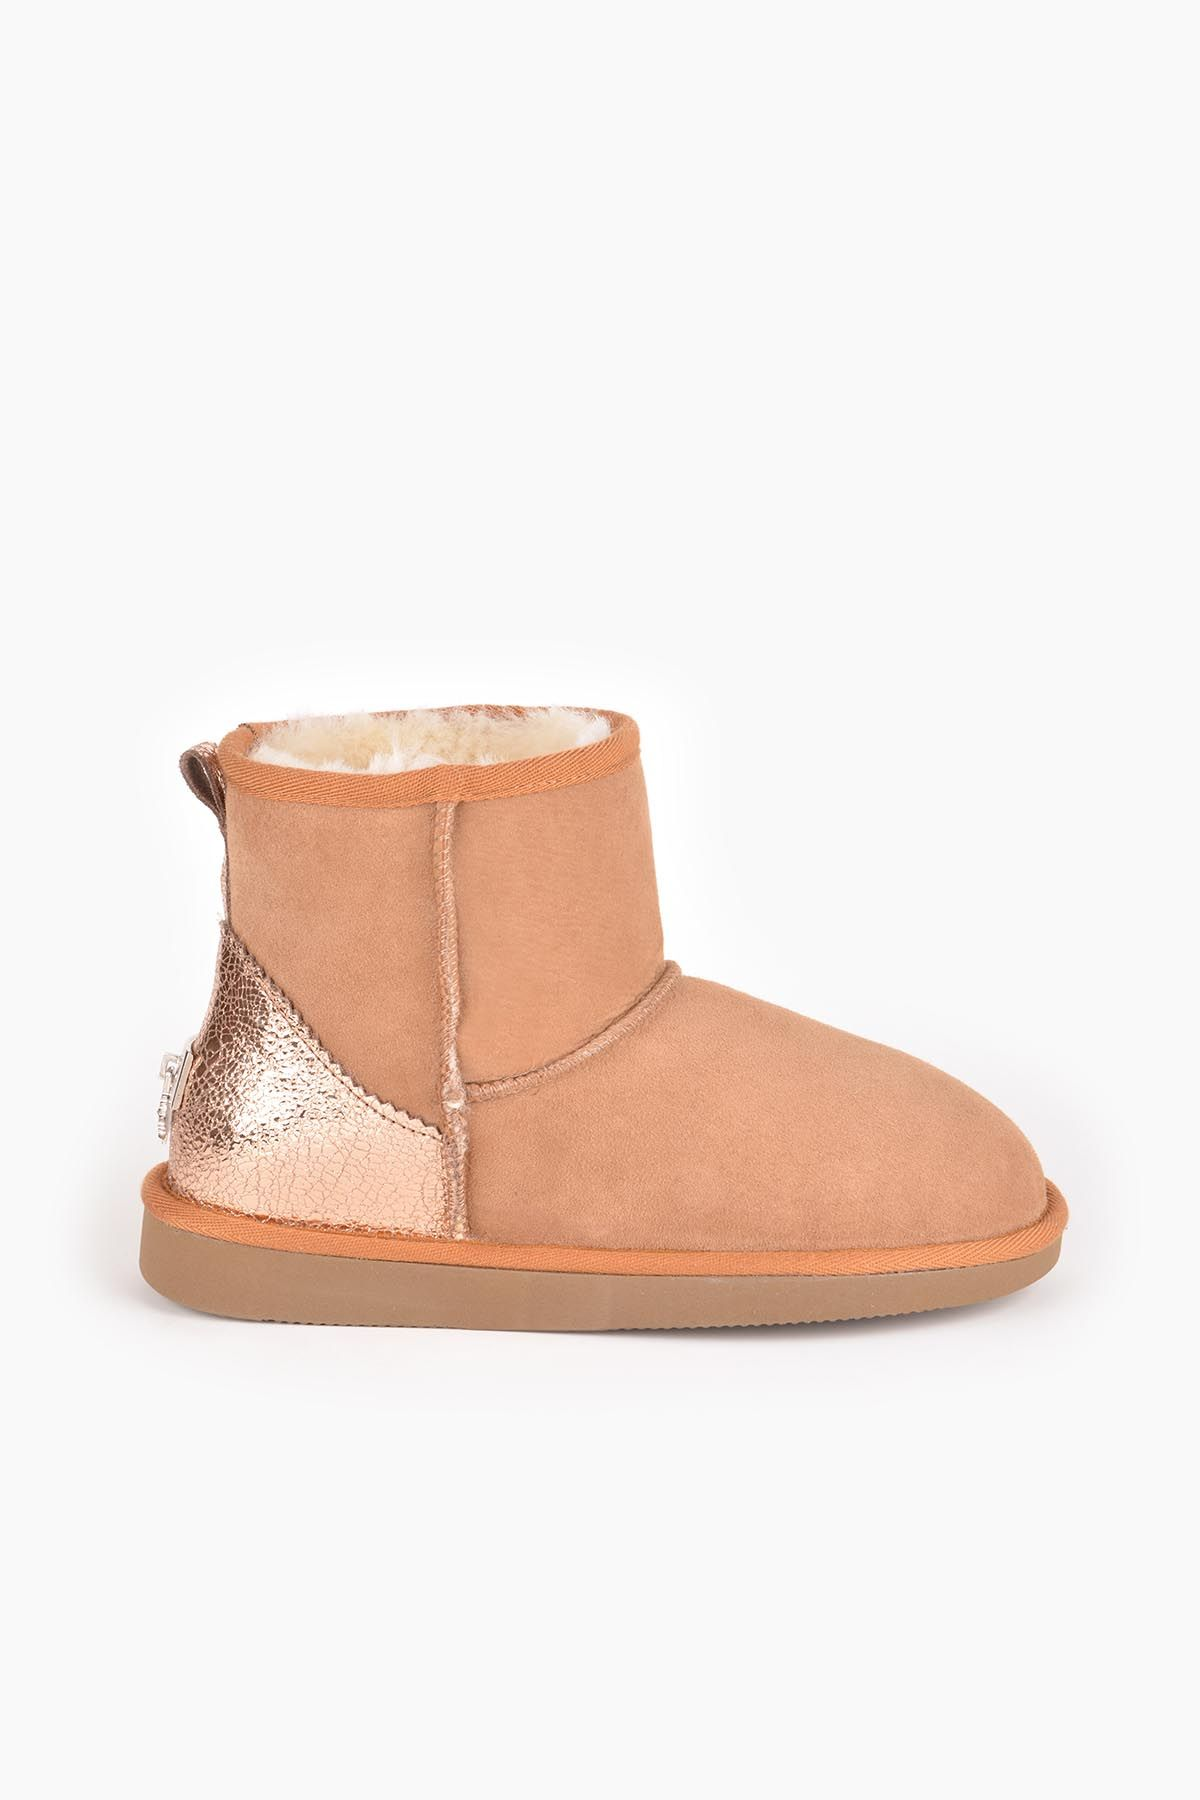 Pegia Women Boots From Genuine Suede And Sheepskin Fur Decorated With Leather 191074 Ginger